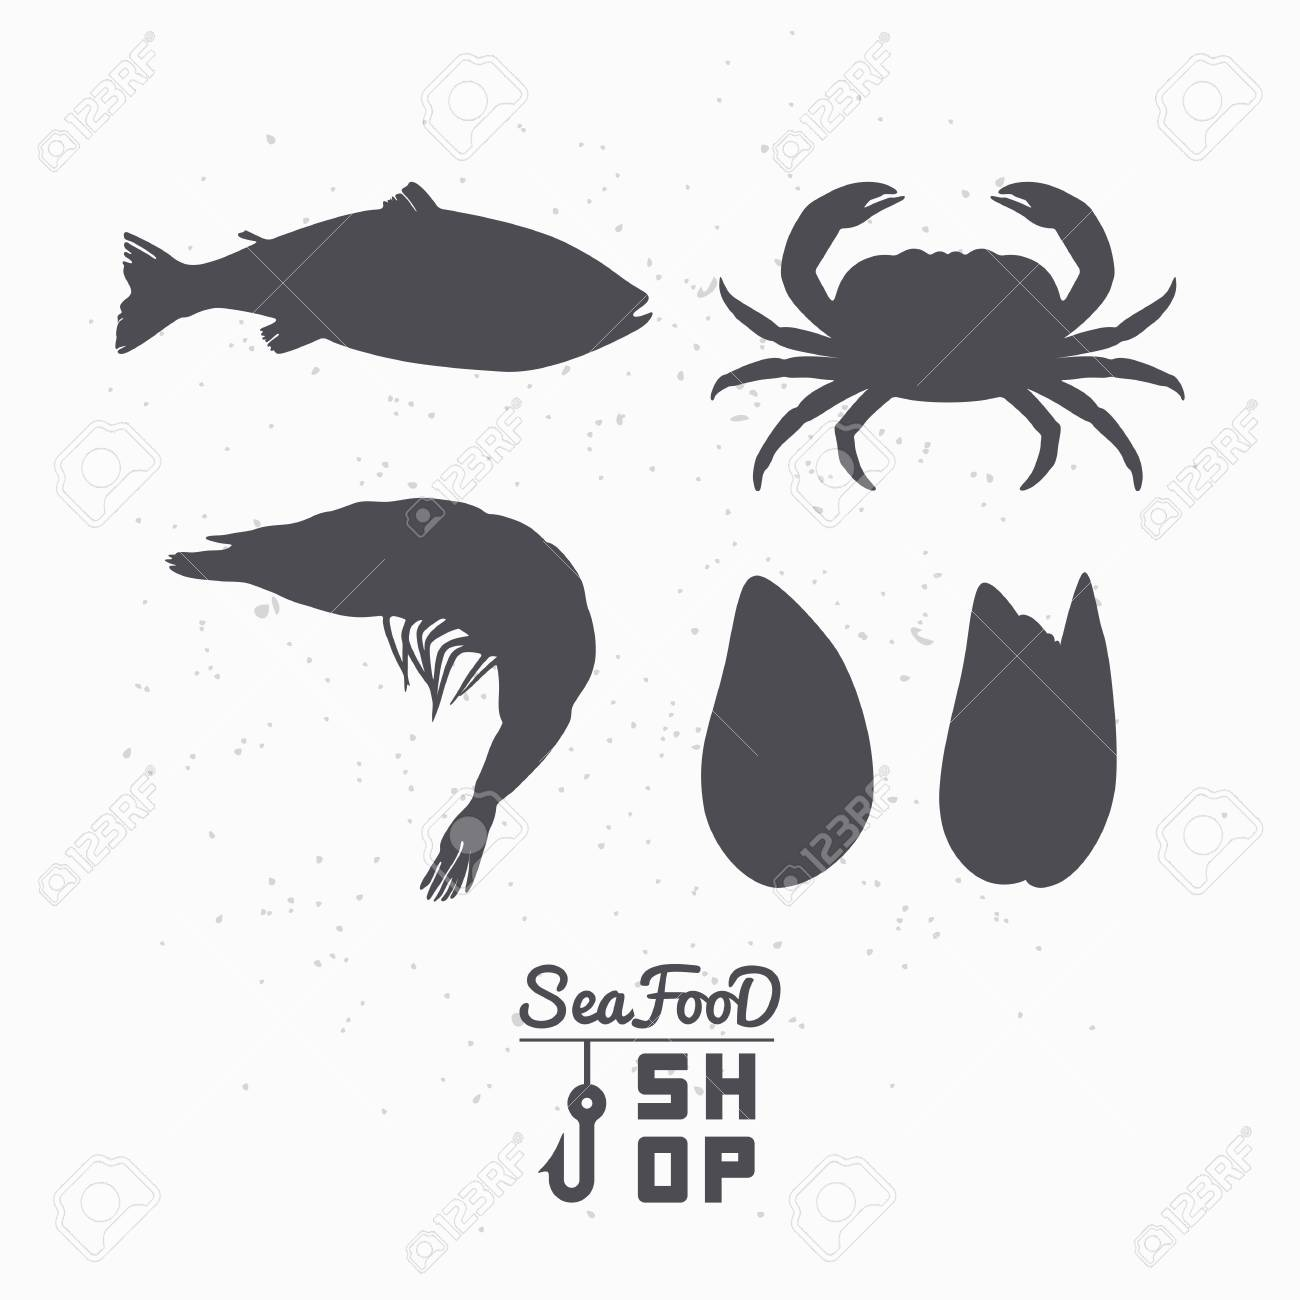 Set Of Marine Animals Silhouettes Fish Crab Shrimp And Mussels